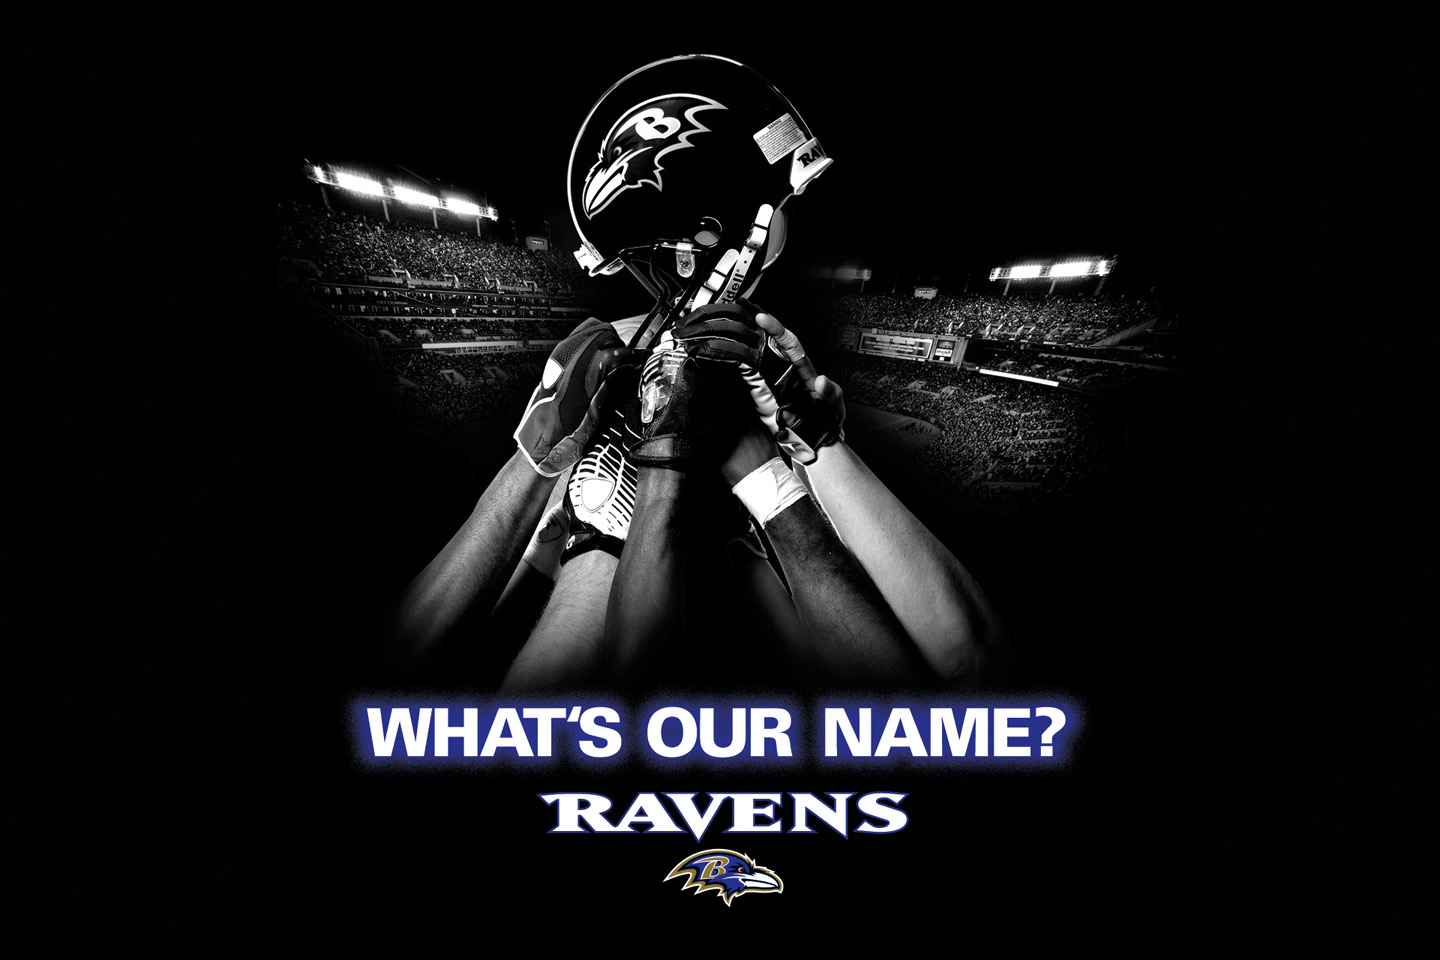 baltimore ravens wallpaper 29849 1440x960